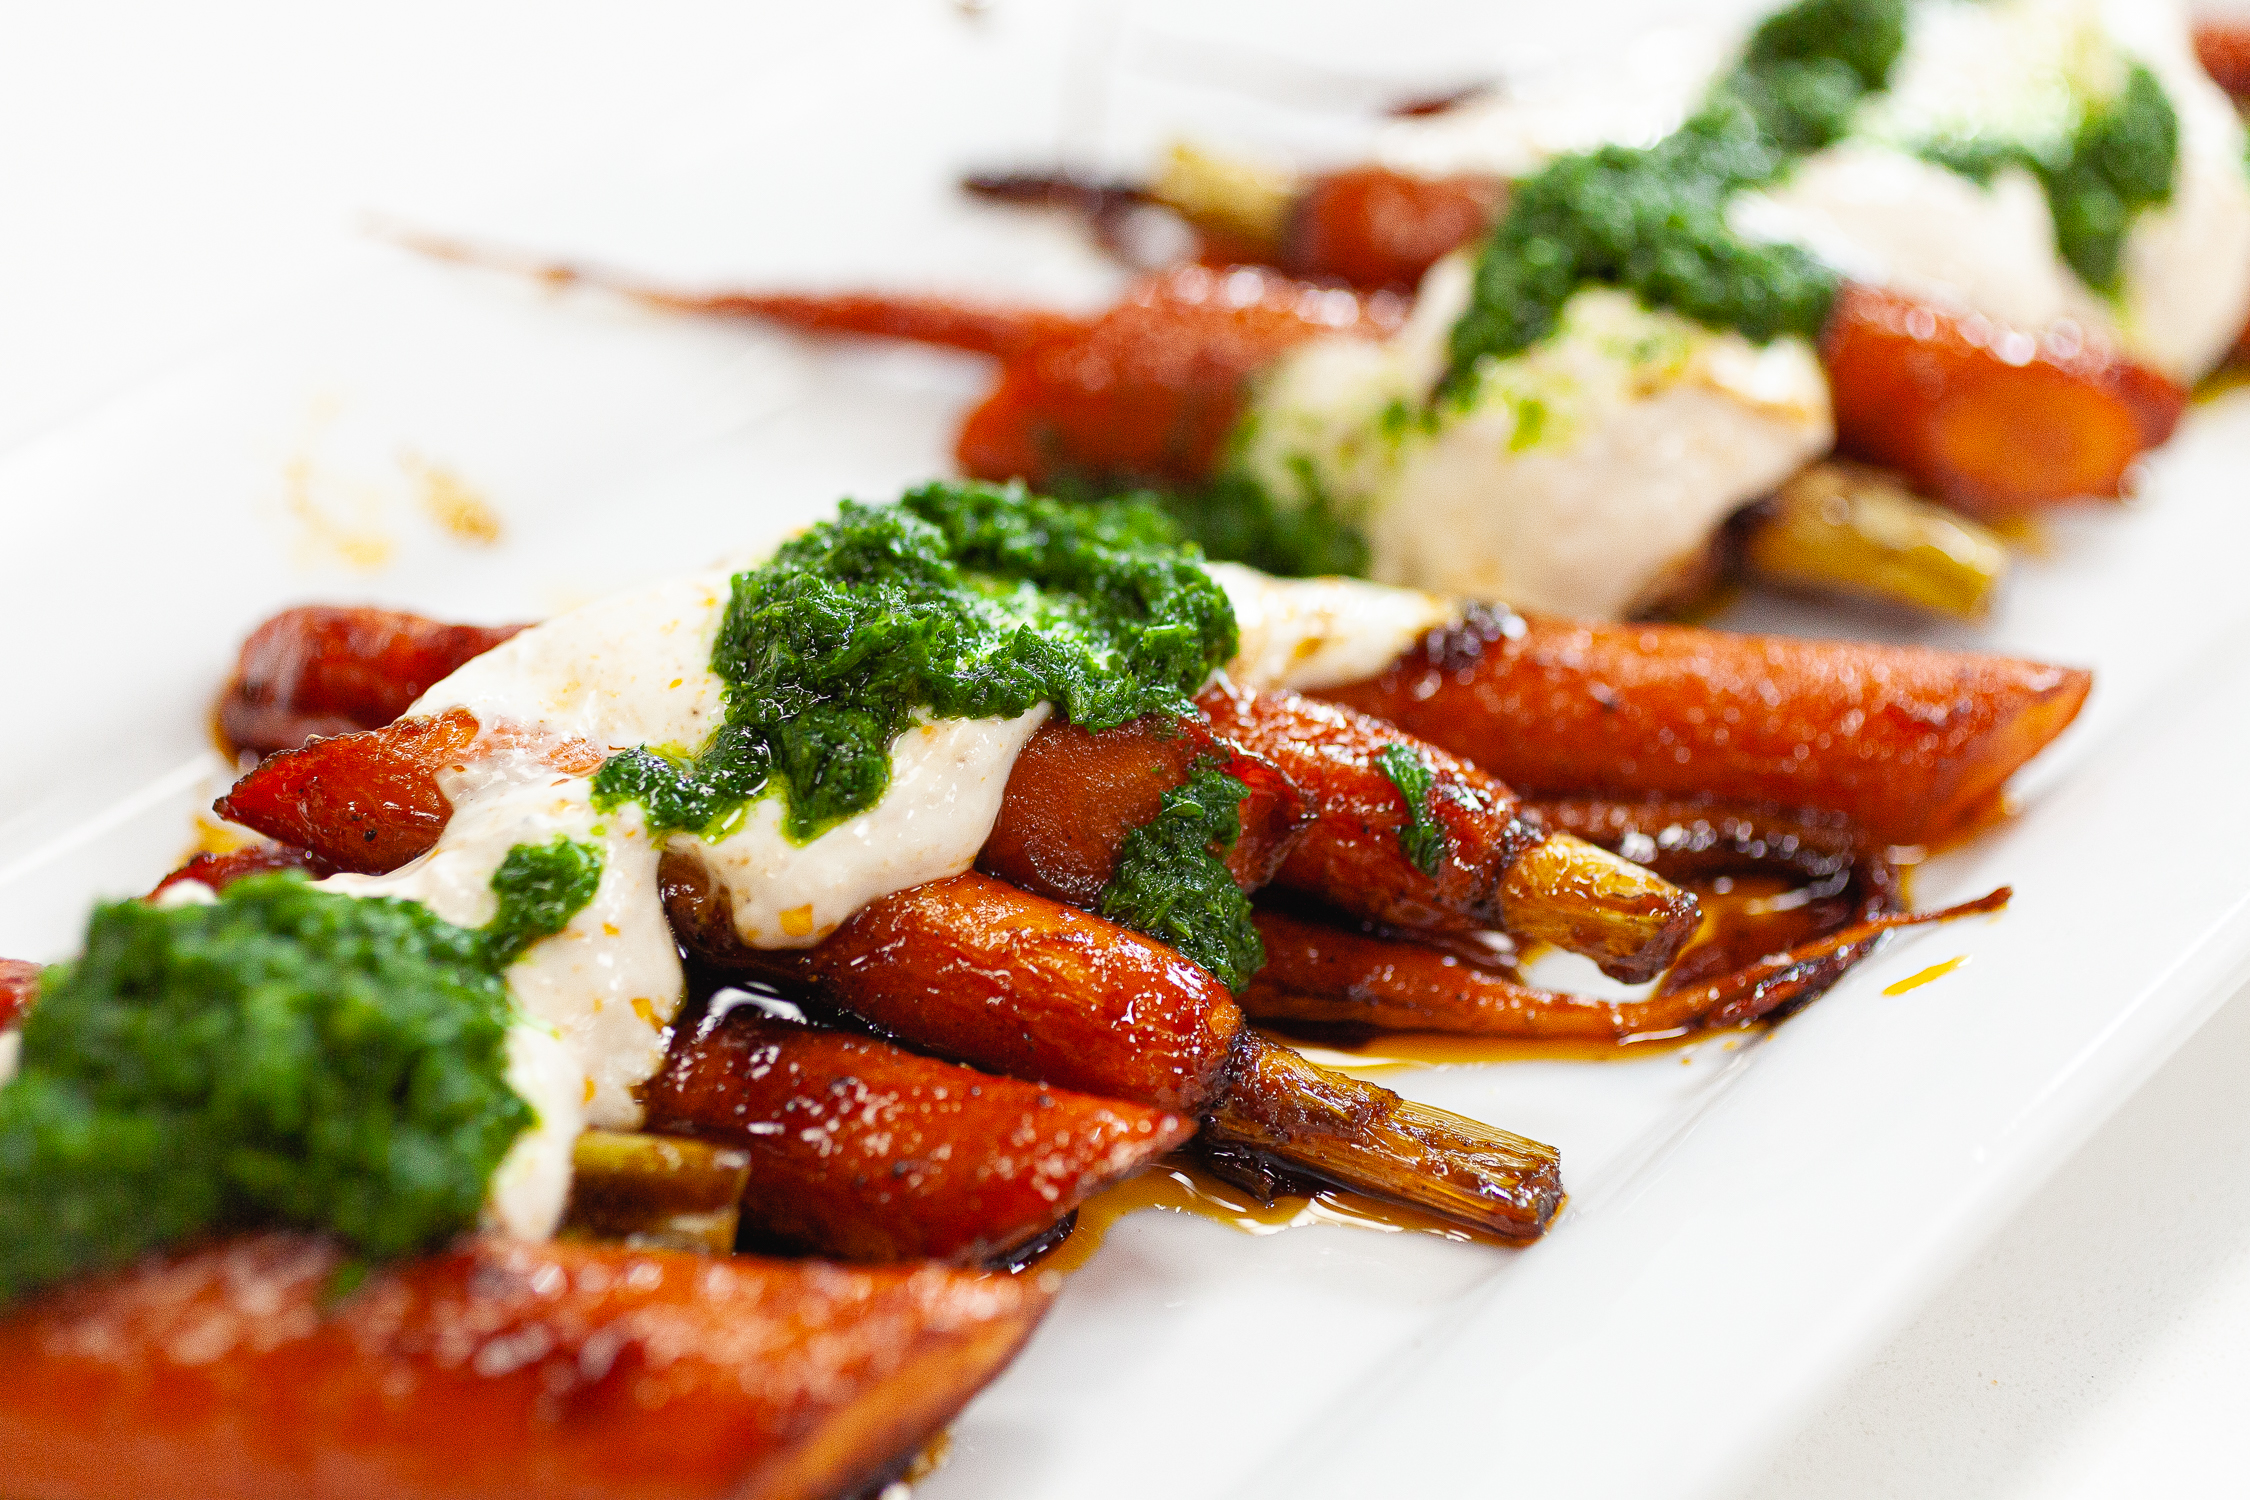 Barbecue smoked carrots with cool yogurt and herbaceous parsley pesto!